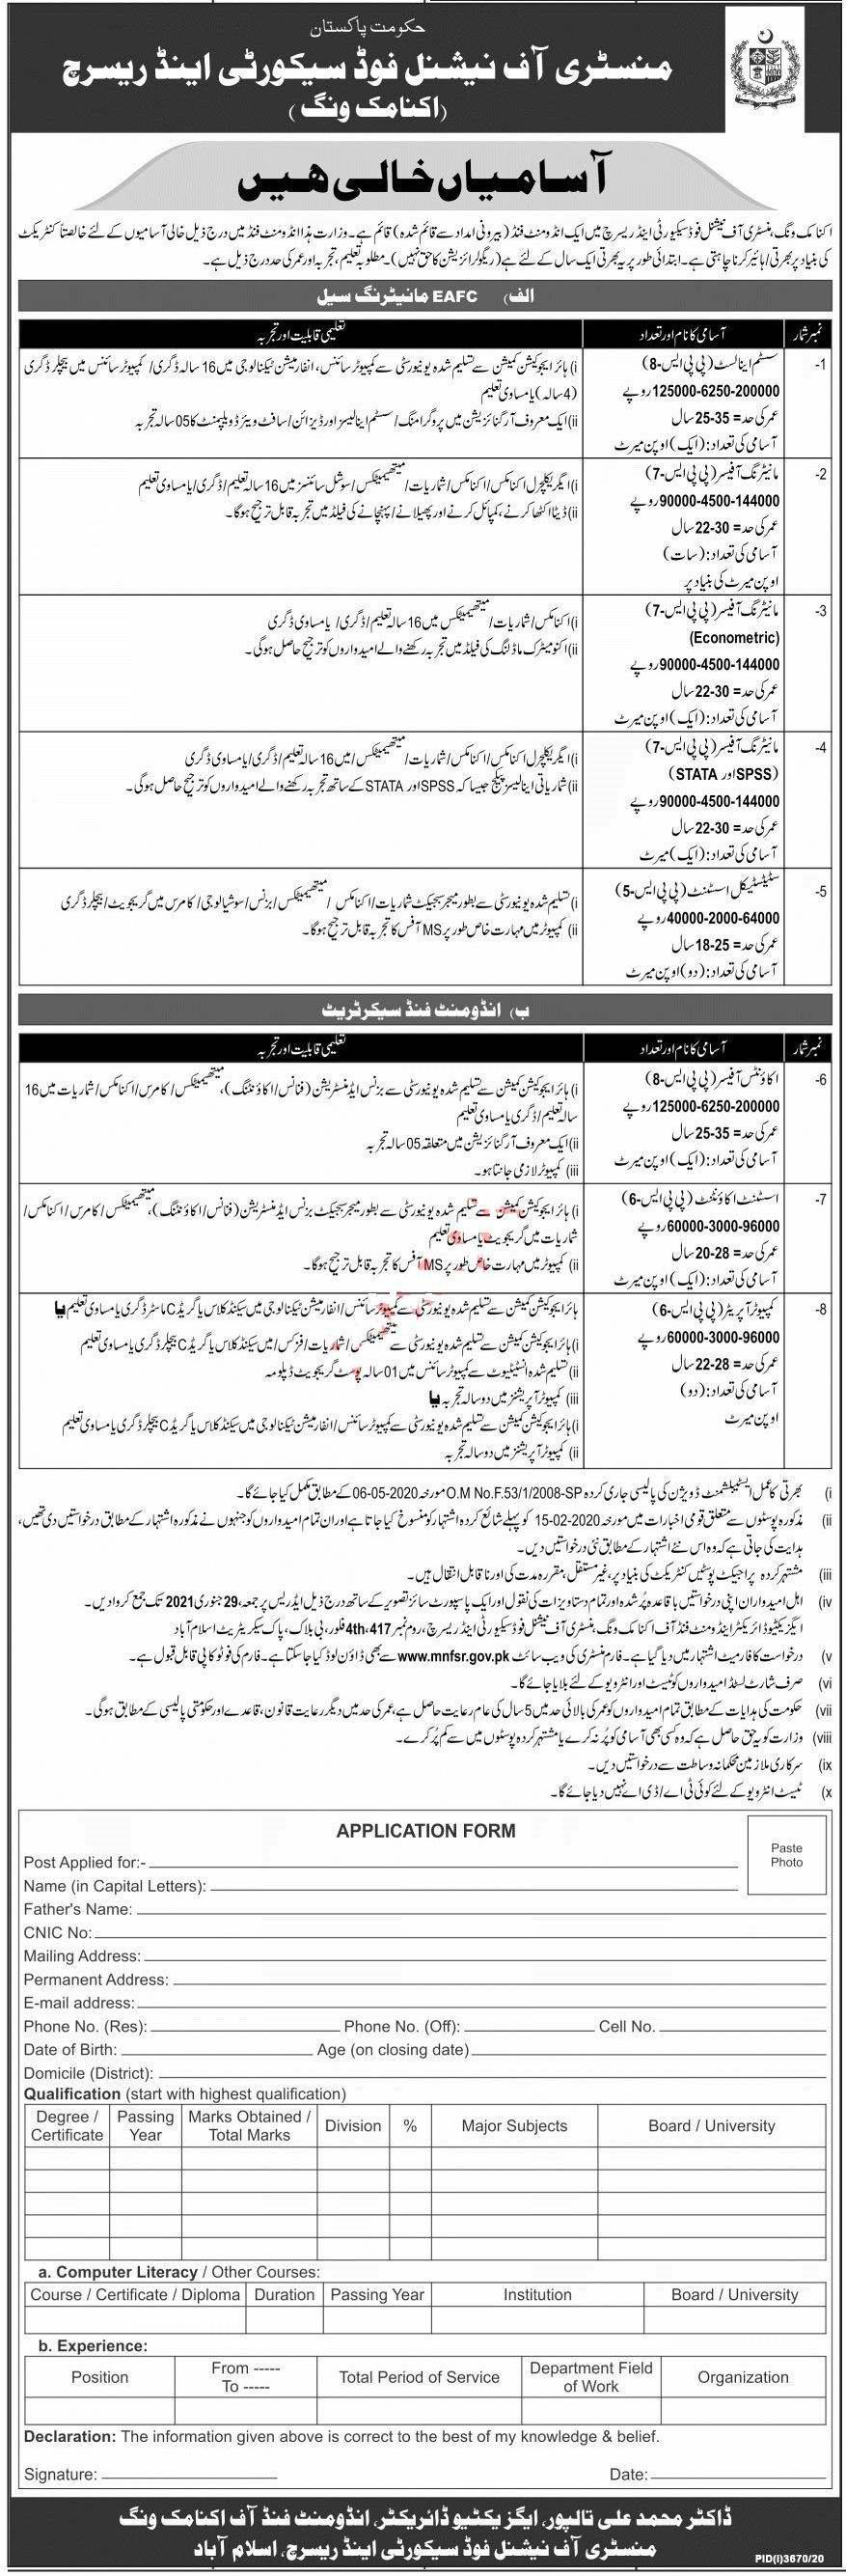 Ministry of National Food Security & Research MNFSR Job 2021 for Monitoring Officer, Statistical Assistant, Accounts Officer, Assistant Accountant, Computer Operator and more